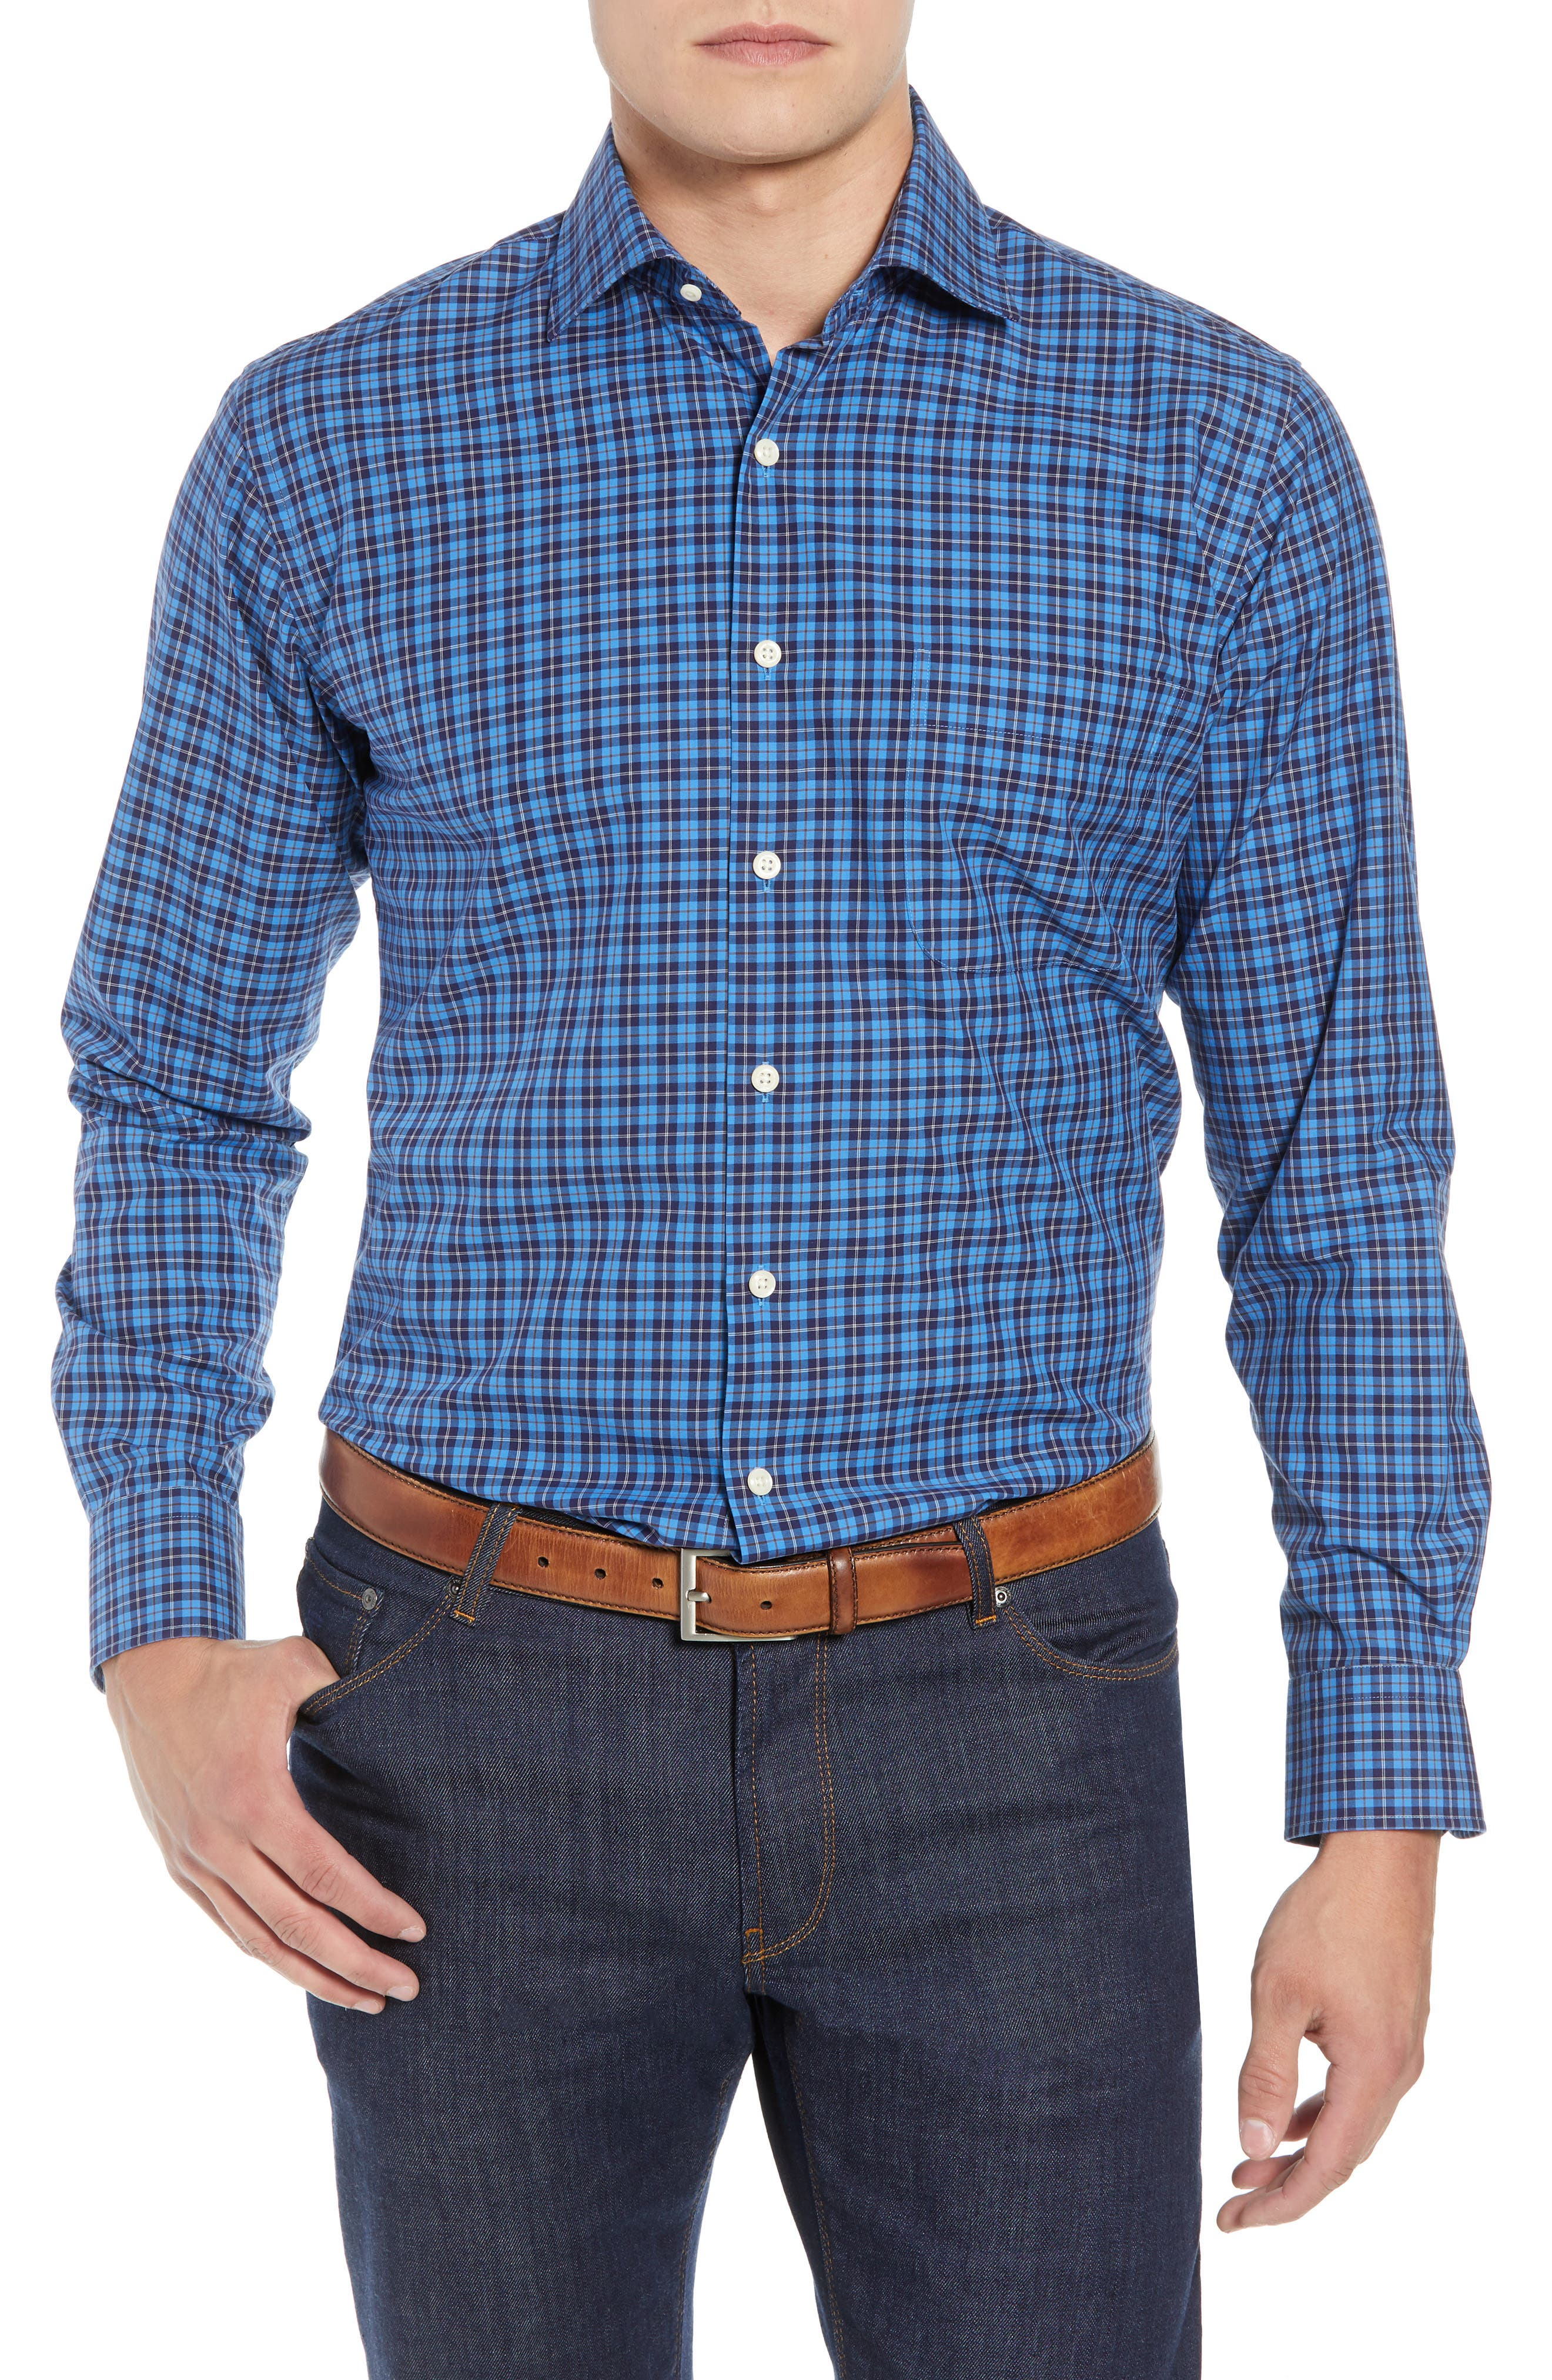 Northgate Plaid Sport Shirt,                         Main,                         color, MARINA BLUE